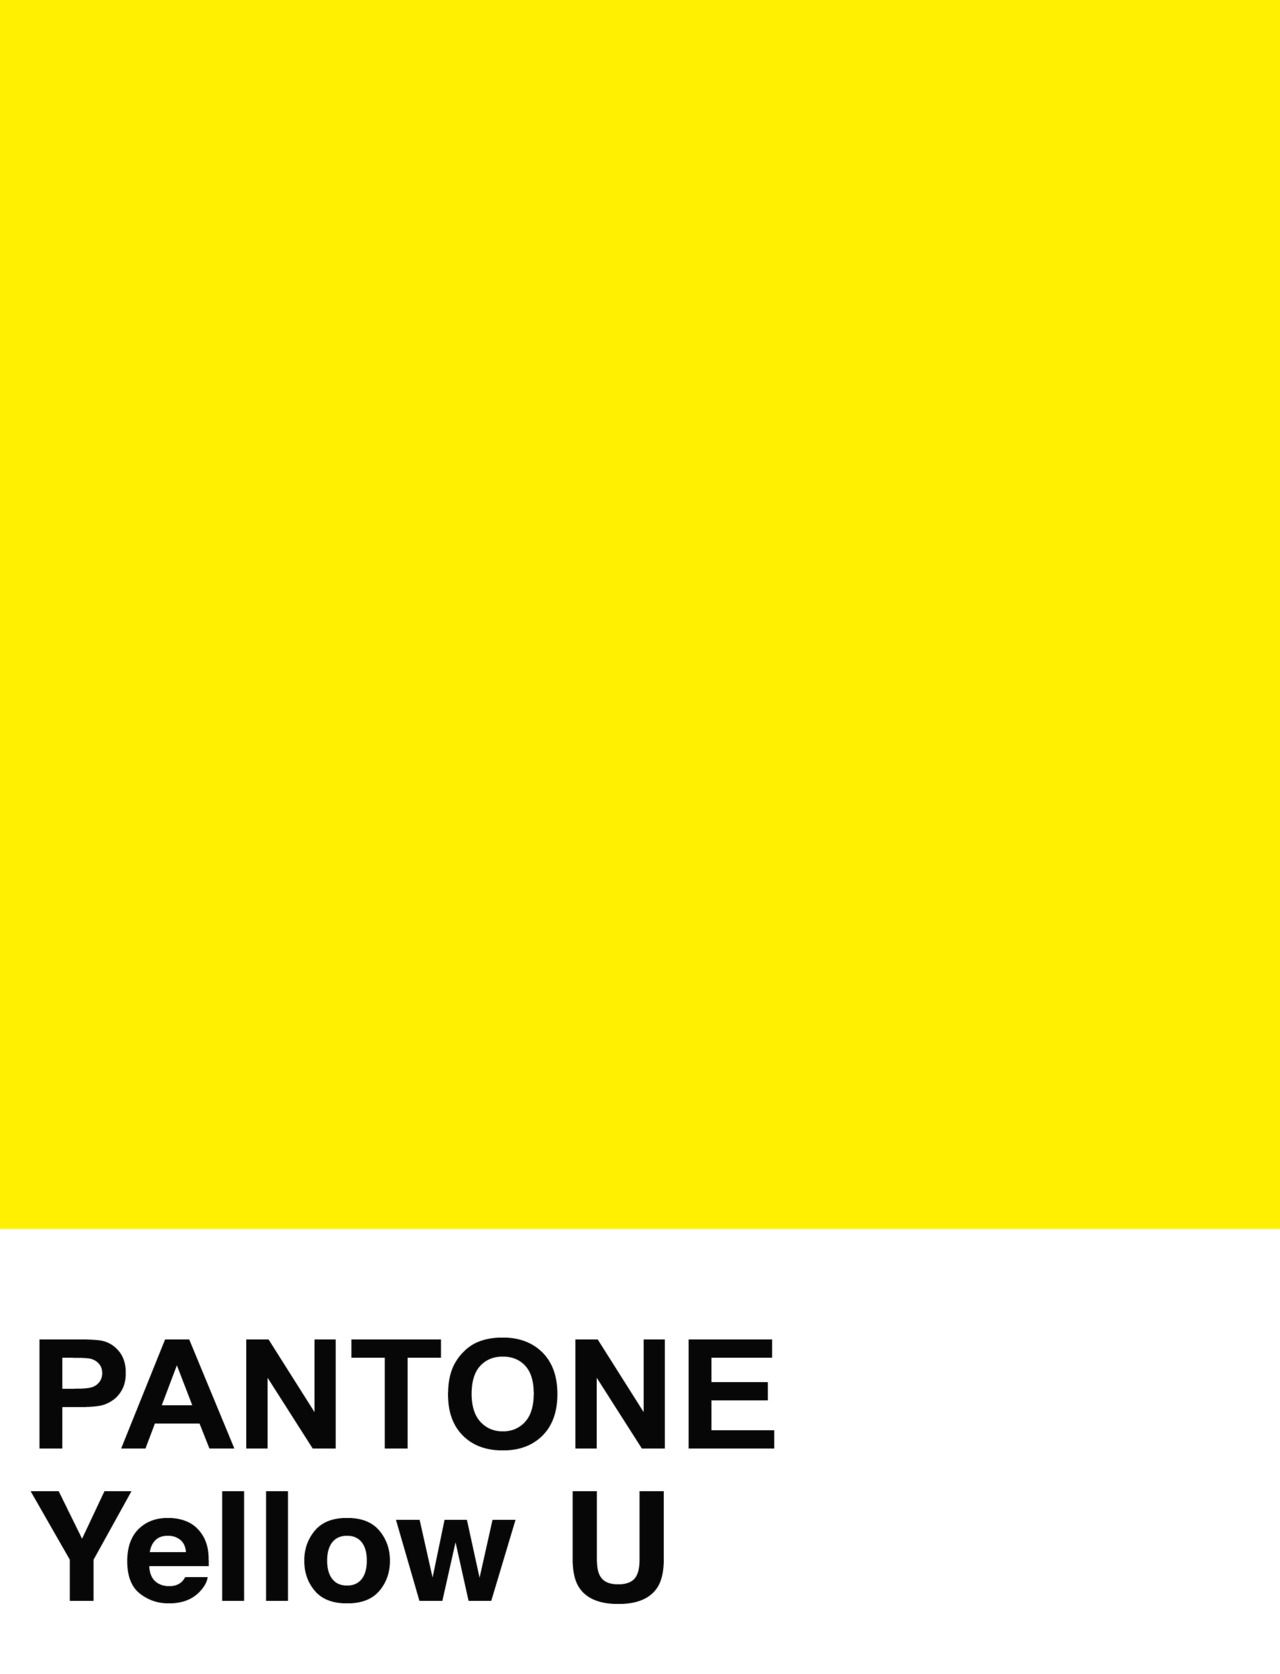 Color 2014 freesia on pinterest pantone yellow and pantone colours - Pantone Solid Uncoated Color Swatchesmustard Yellowpaint Coloursgraphic